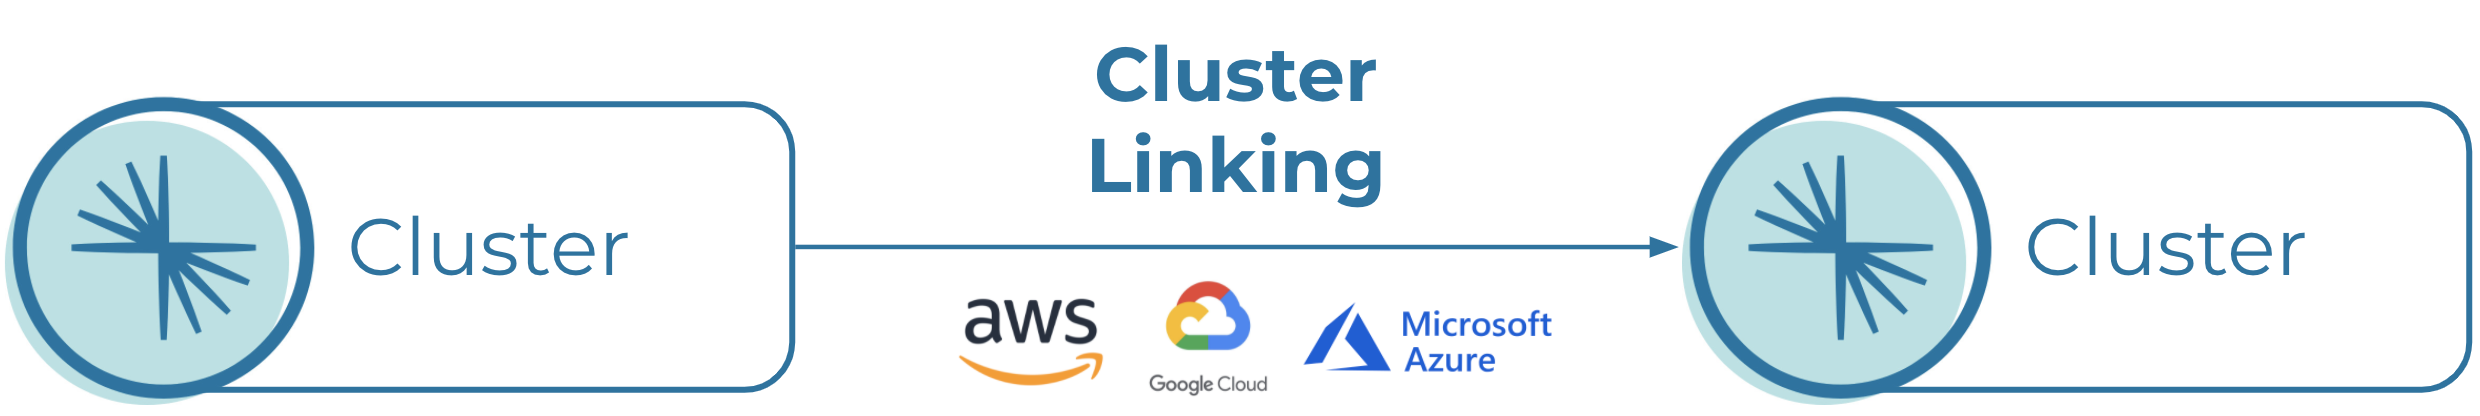 Cluster linking